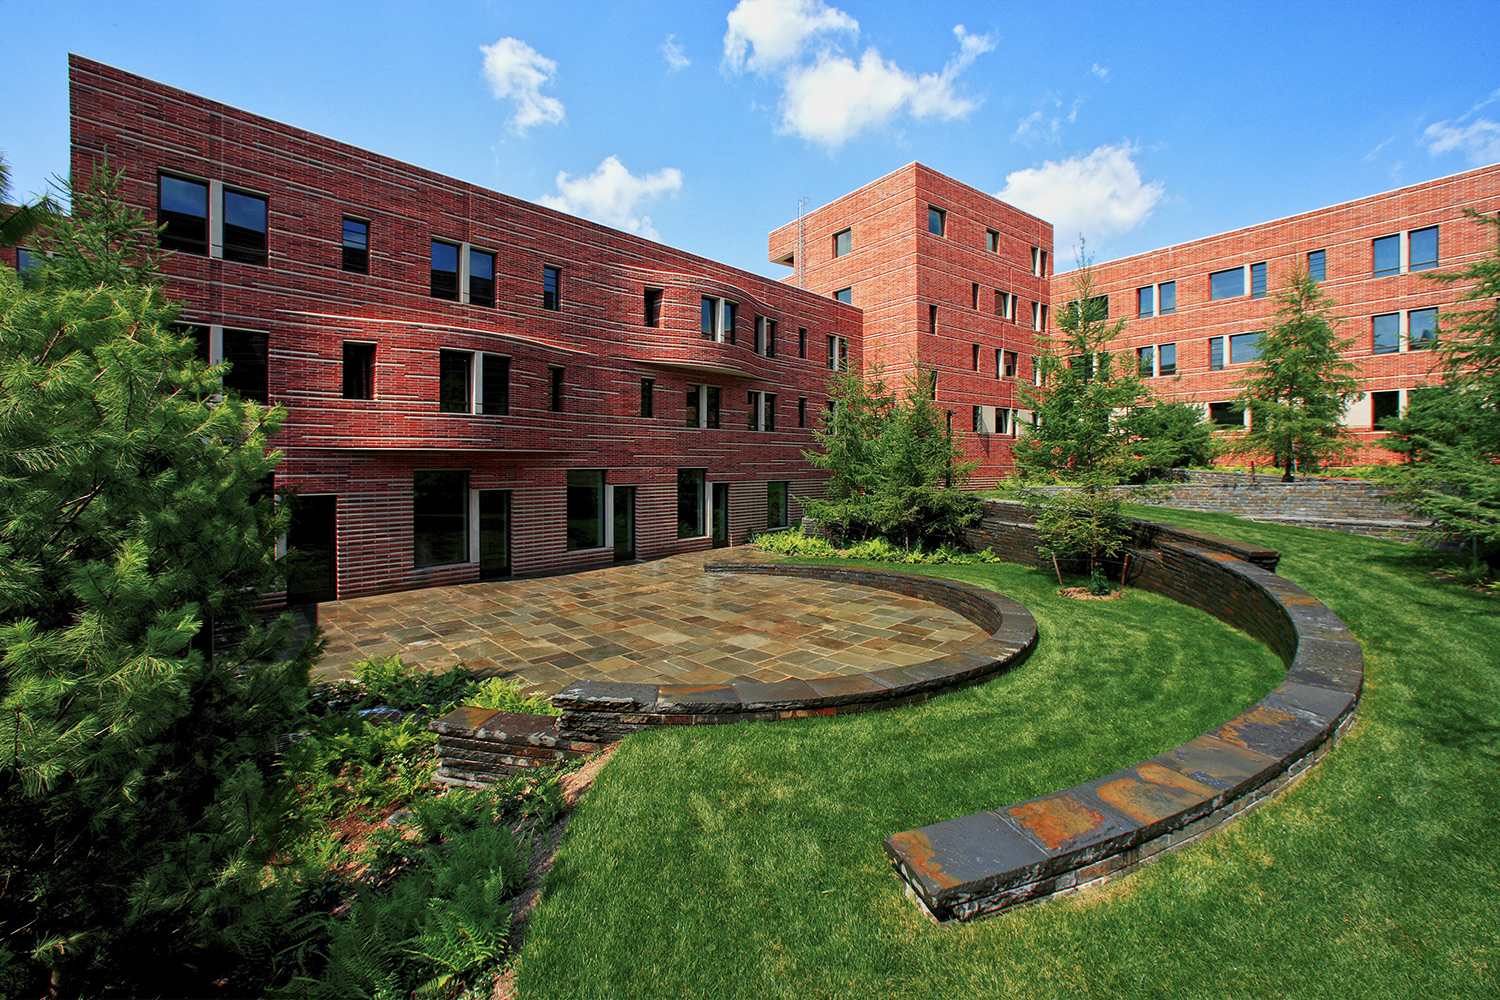 Princeton University Butler Dorms for Turner Construction